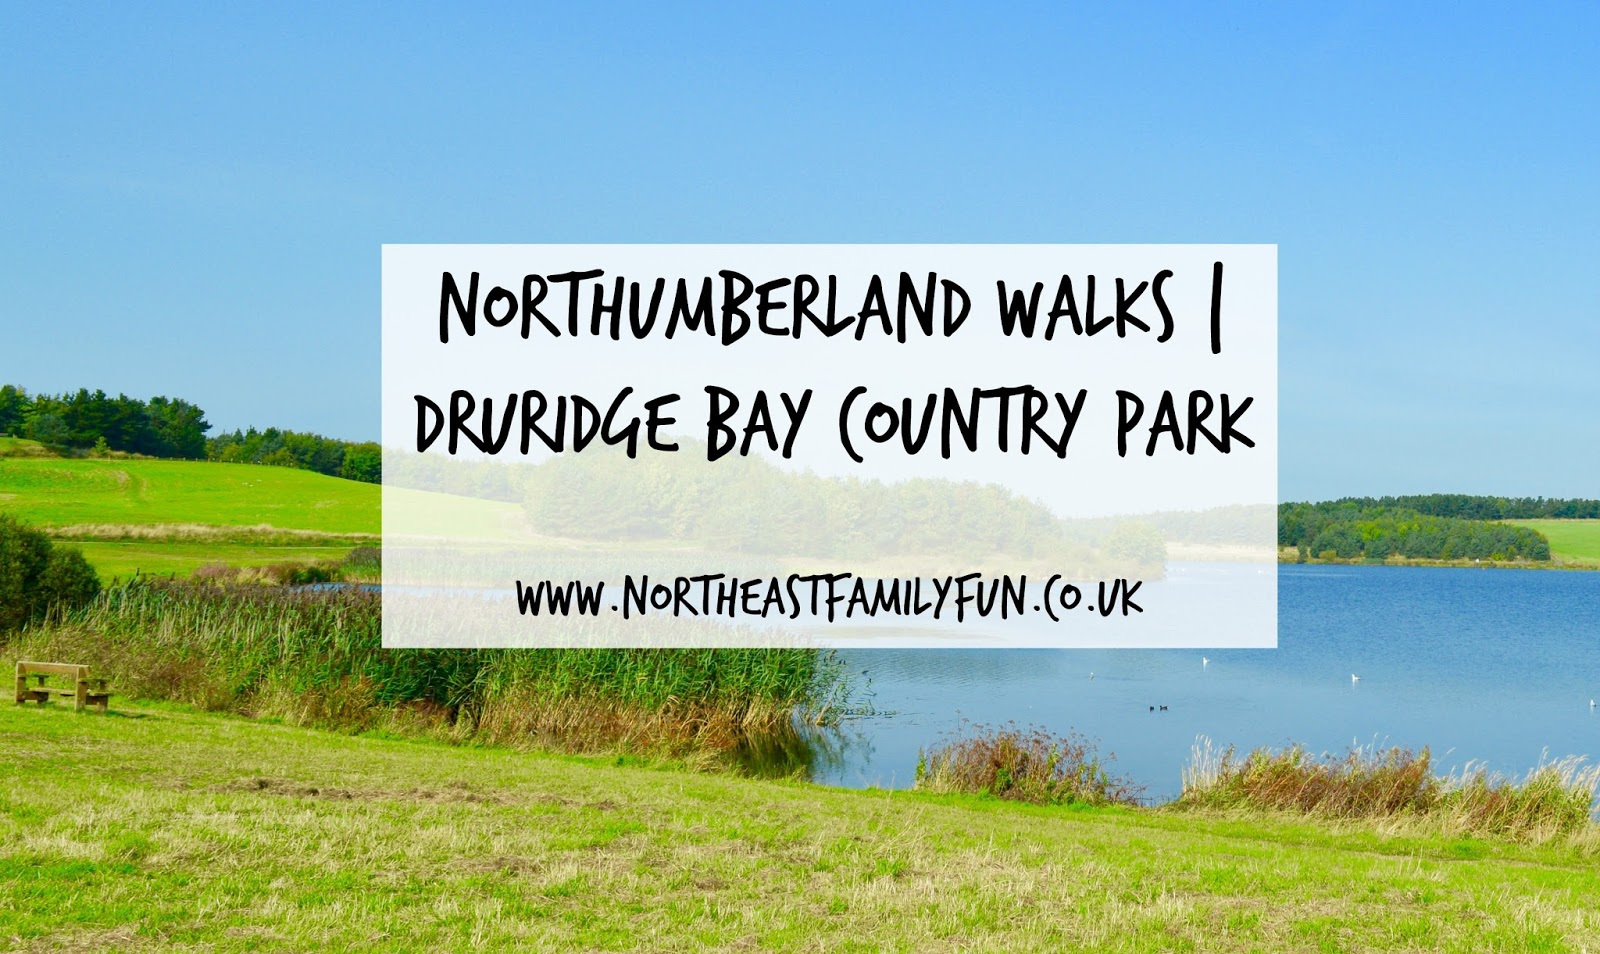 A walk around Ladyburn Lake at Druridge Bay Country Park | Northumberland